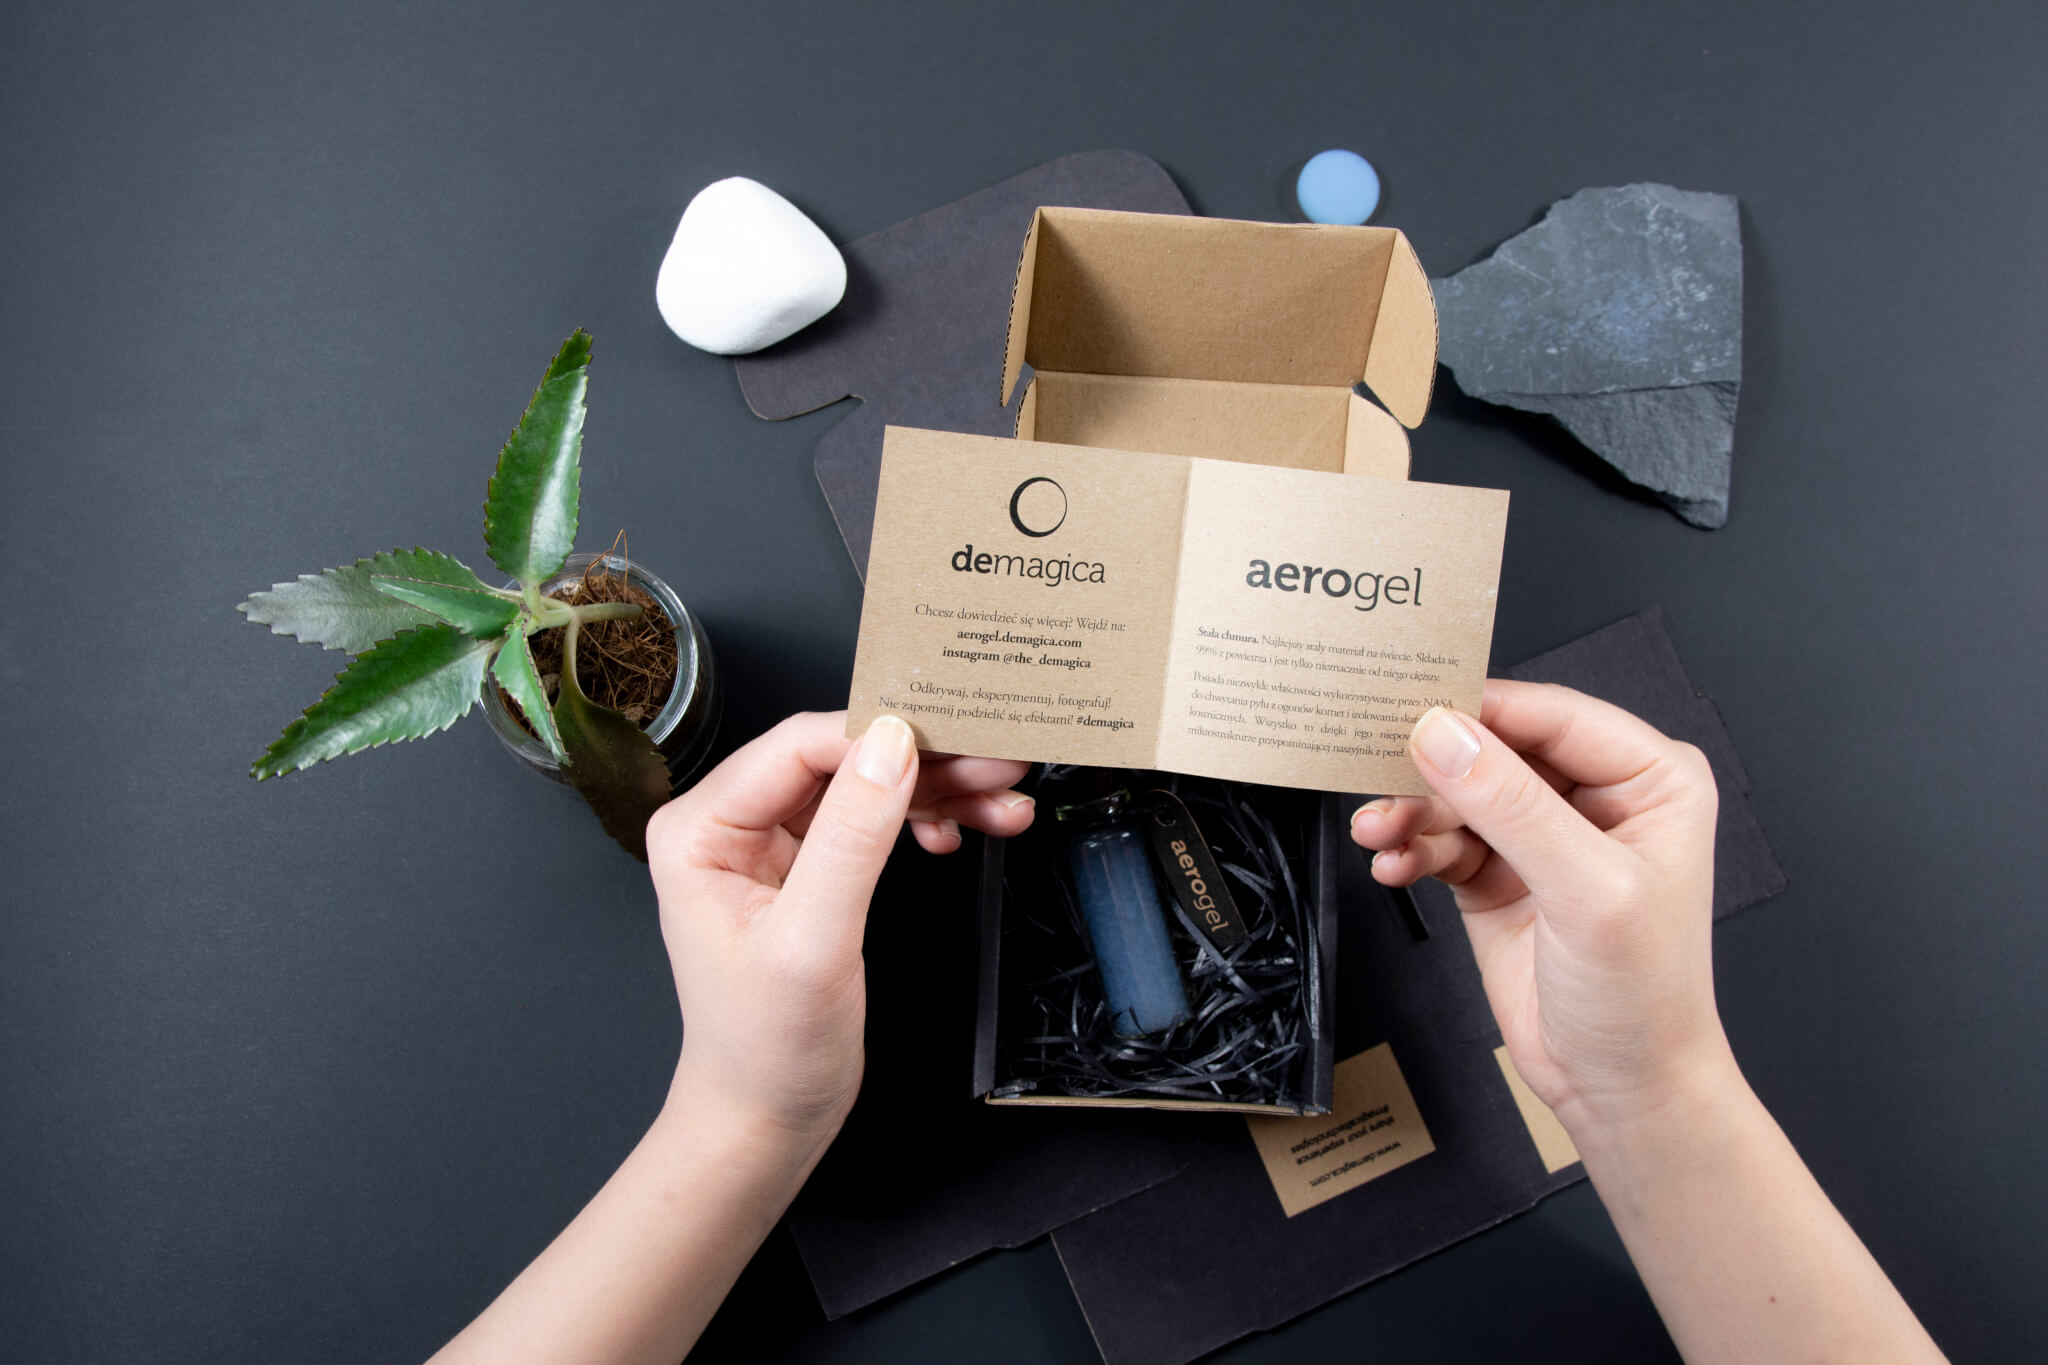 packaging tailor-made by demagica